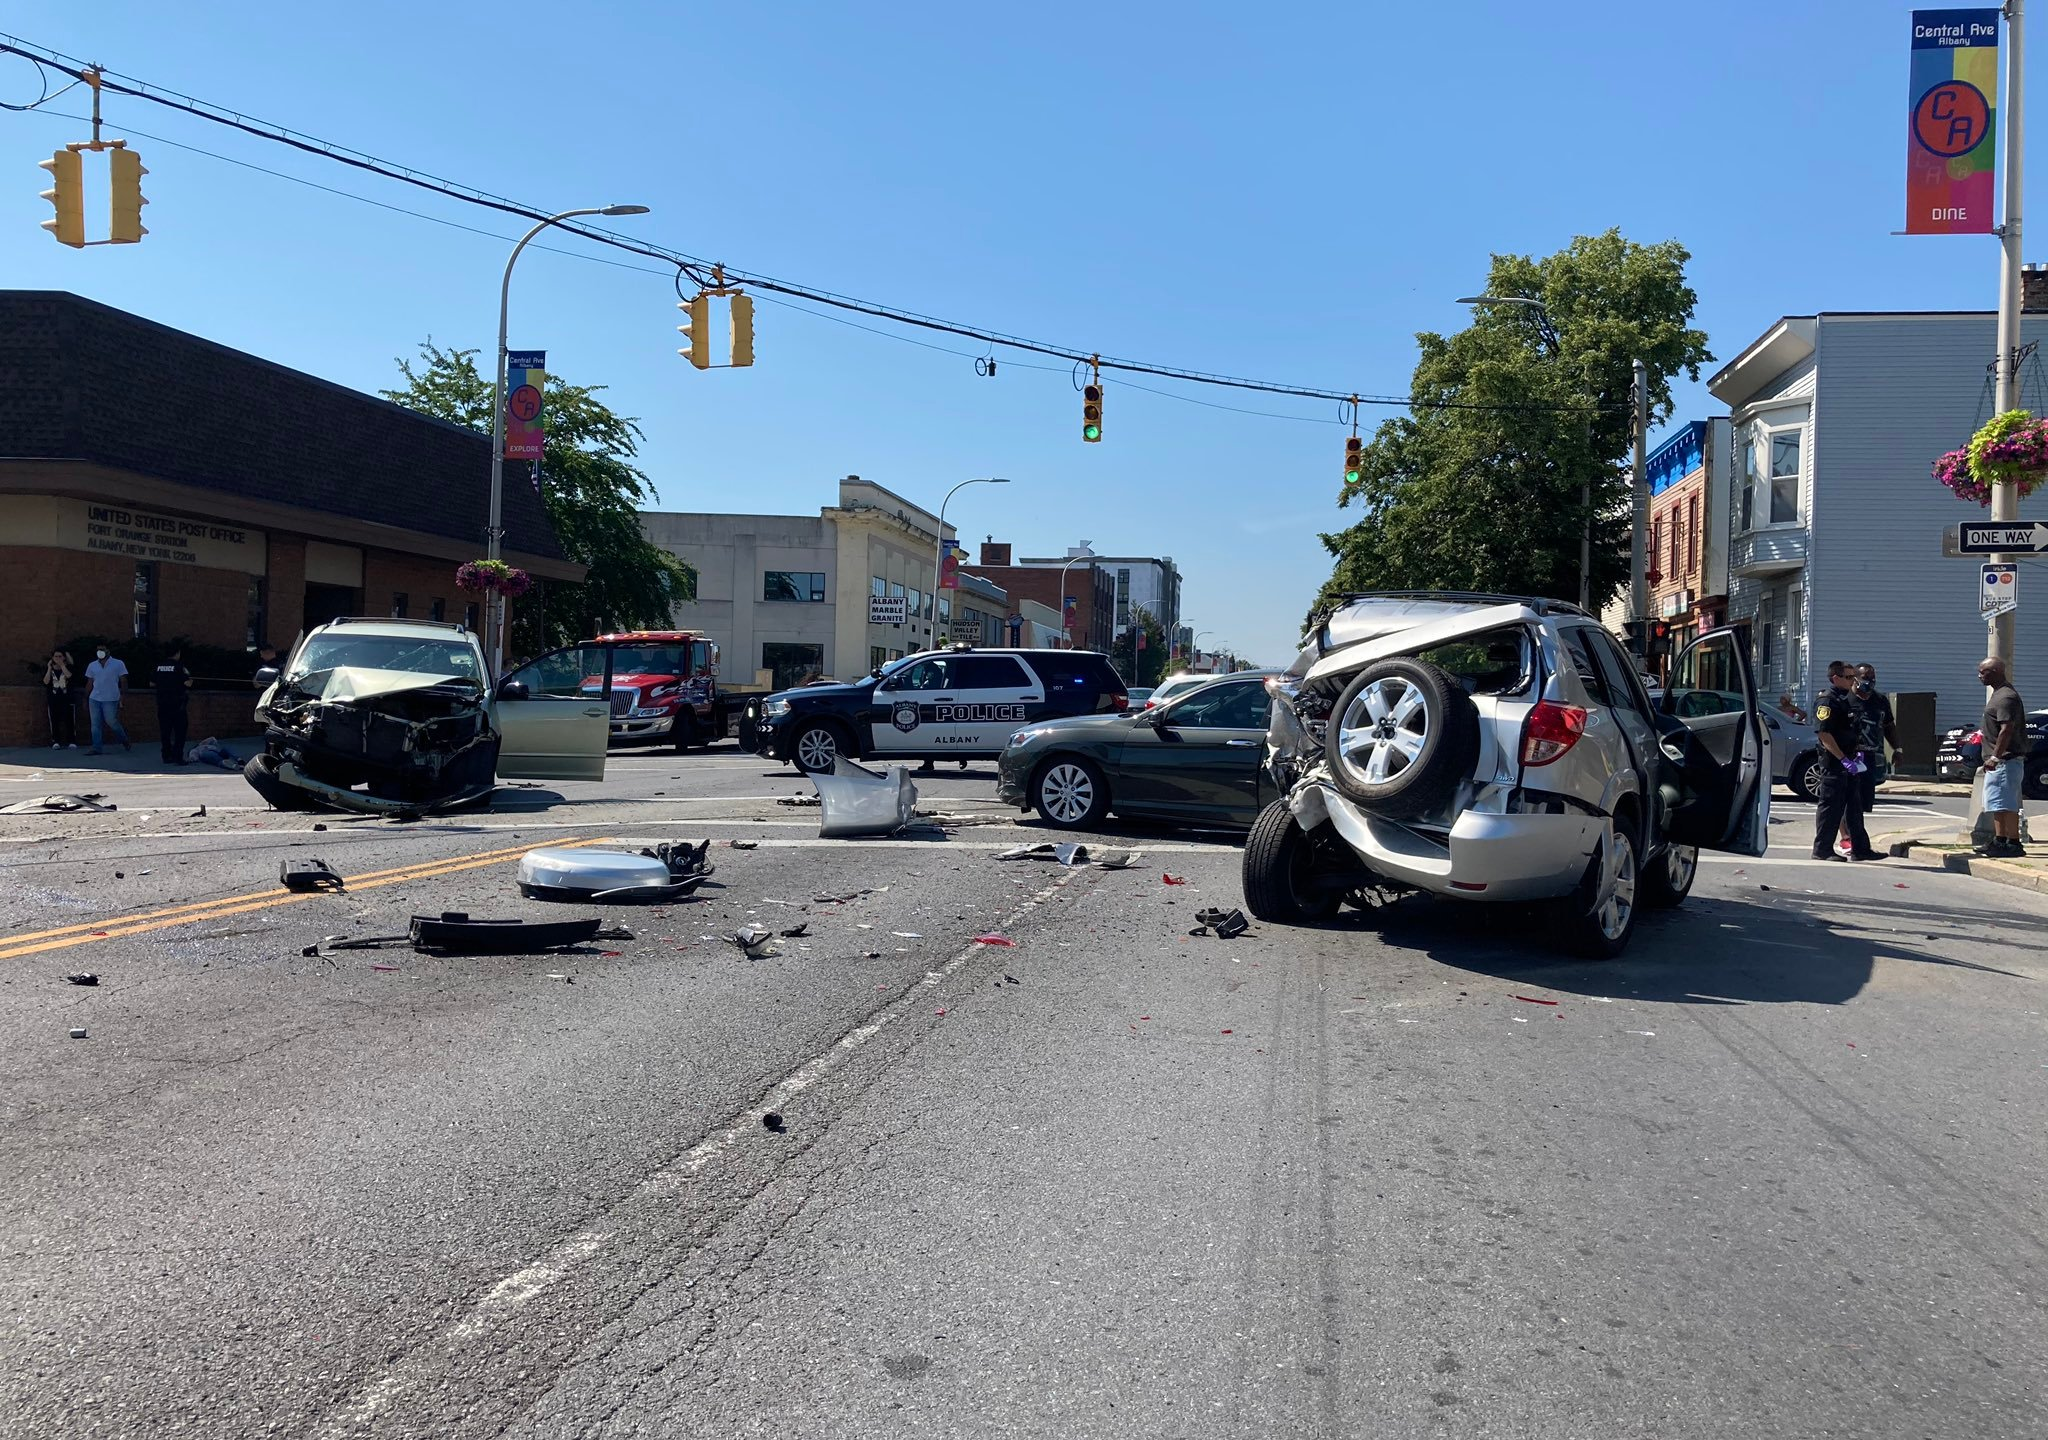 The scene of an accident on Central Avenue in Albany